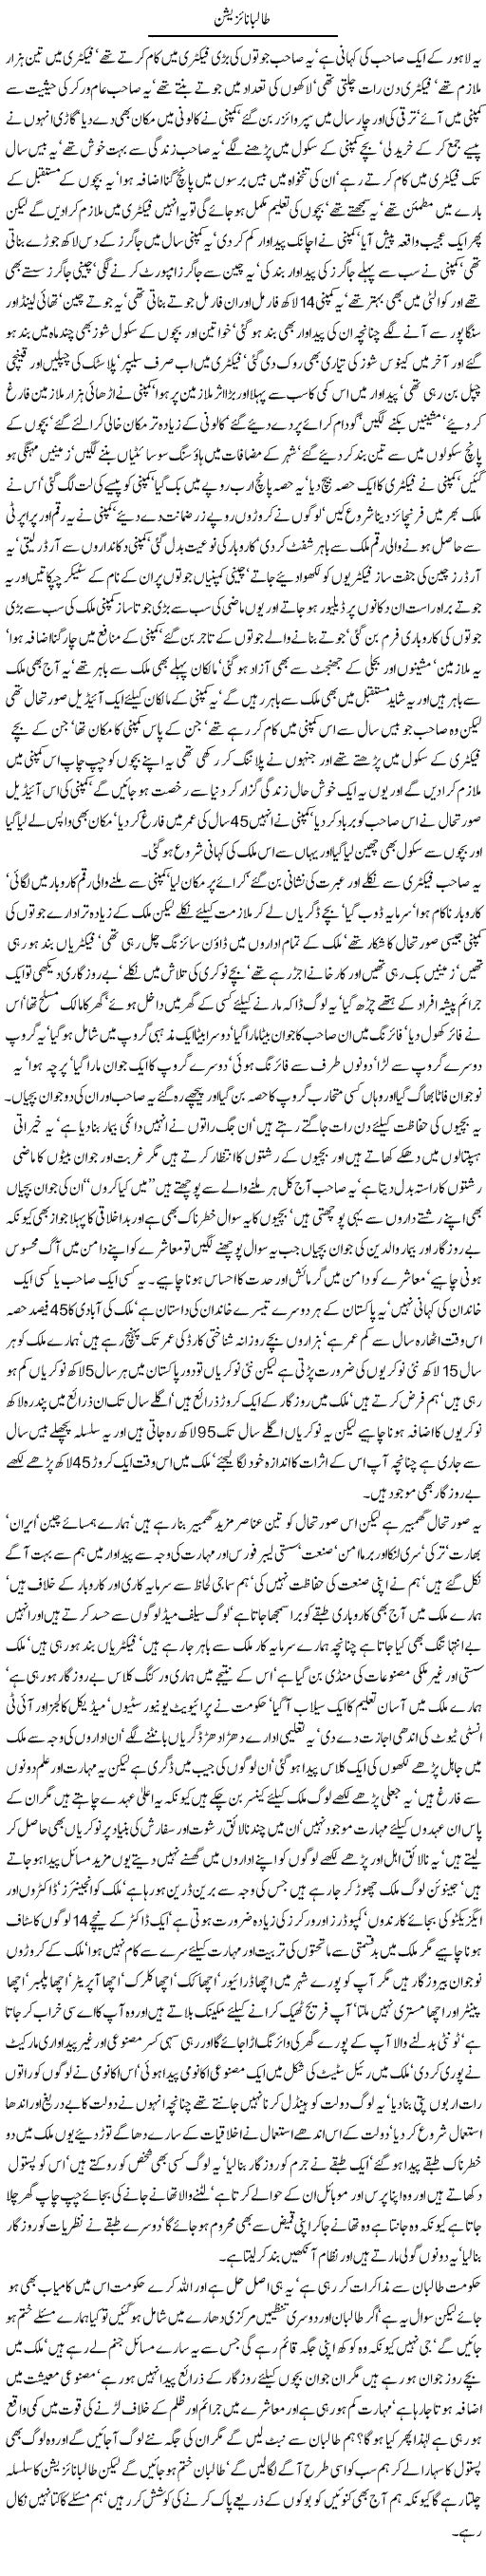 Javed Chaudhry Columns Daily express, News stories